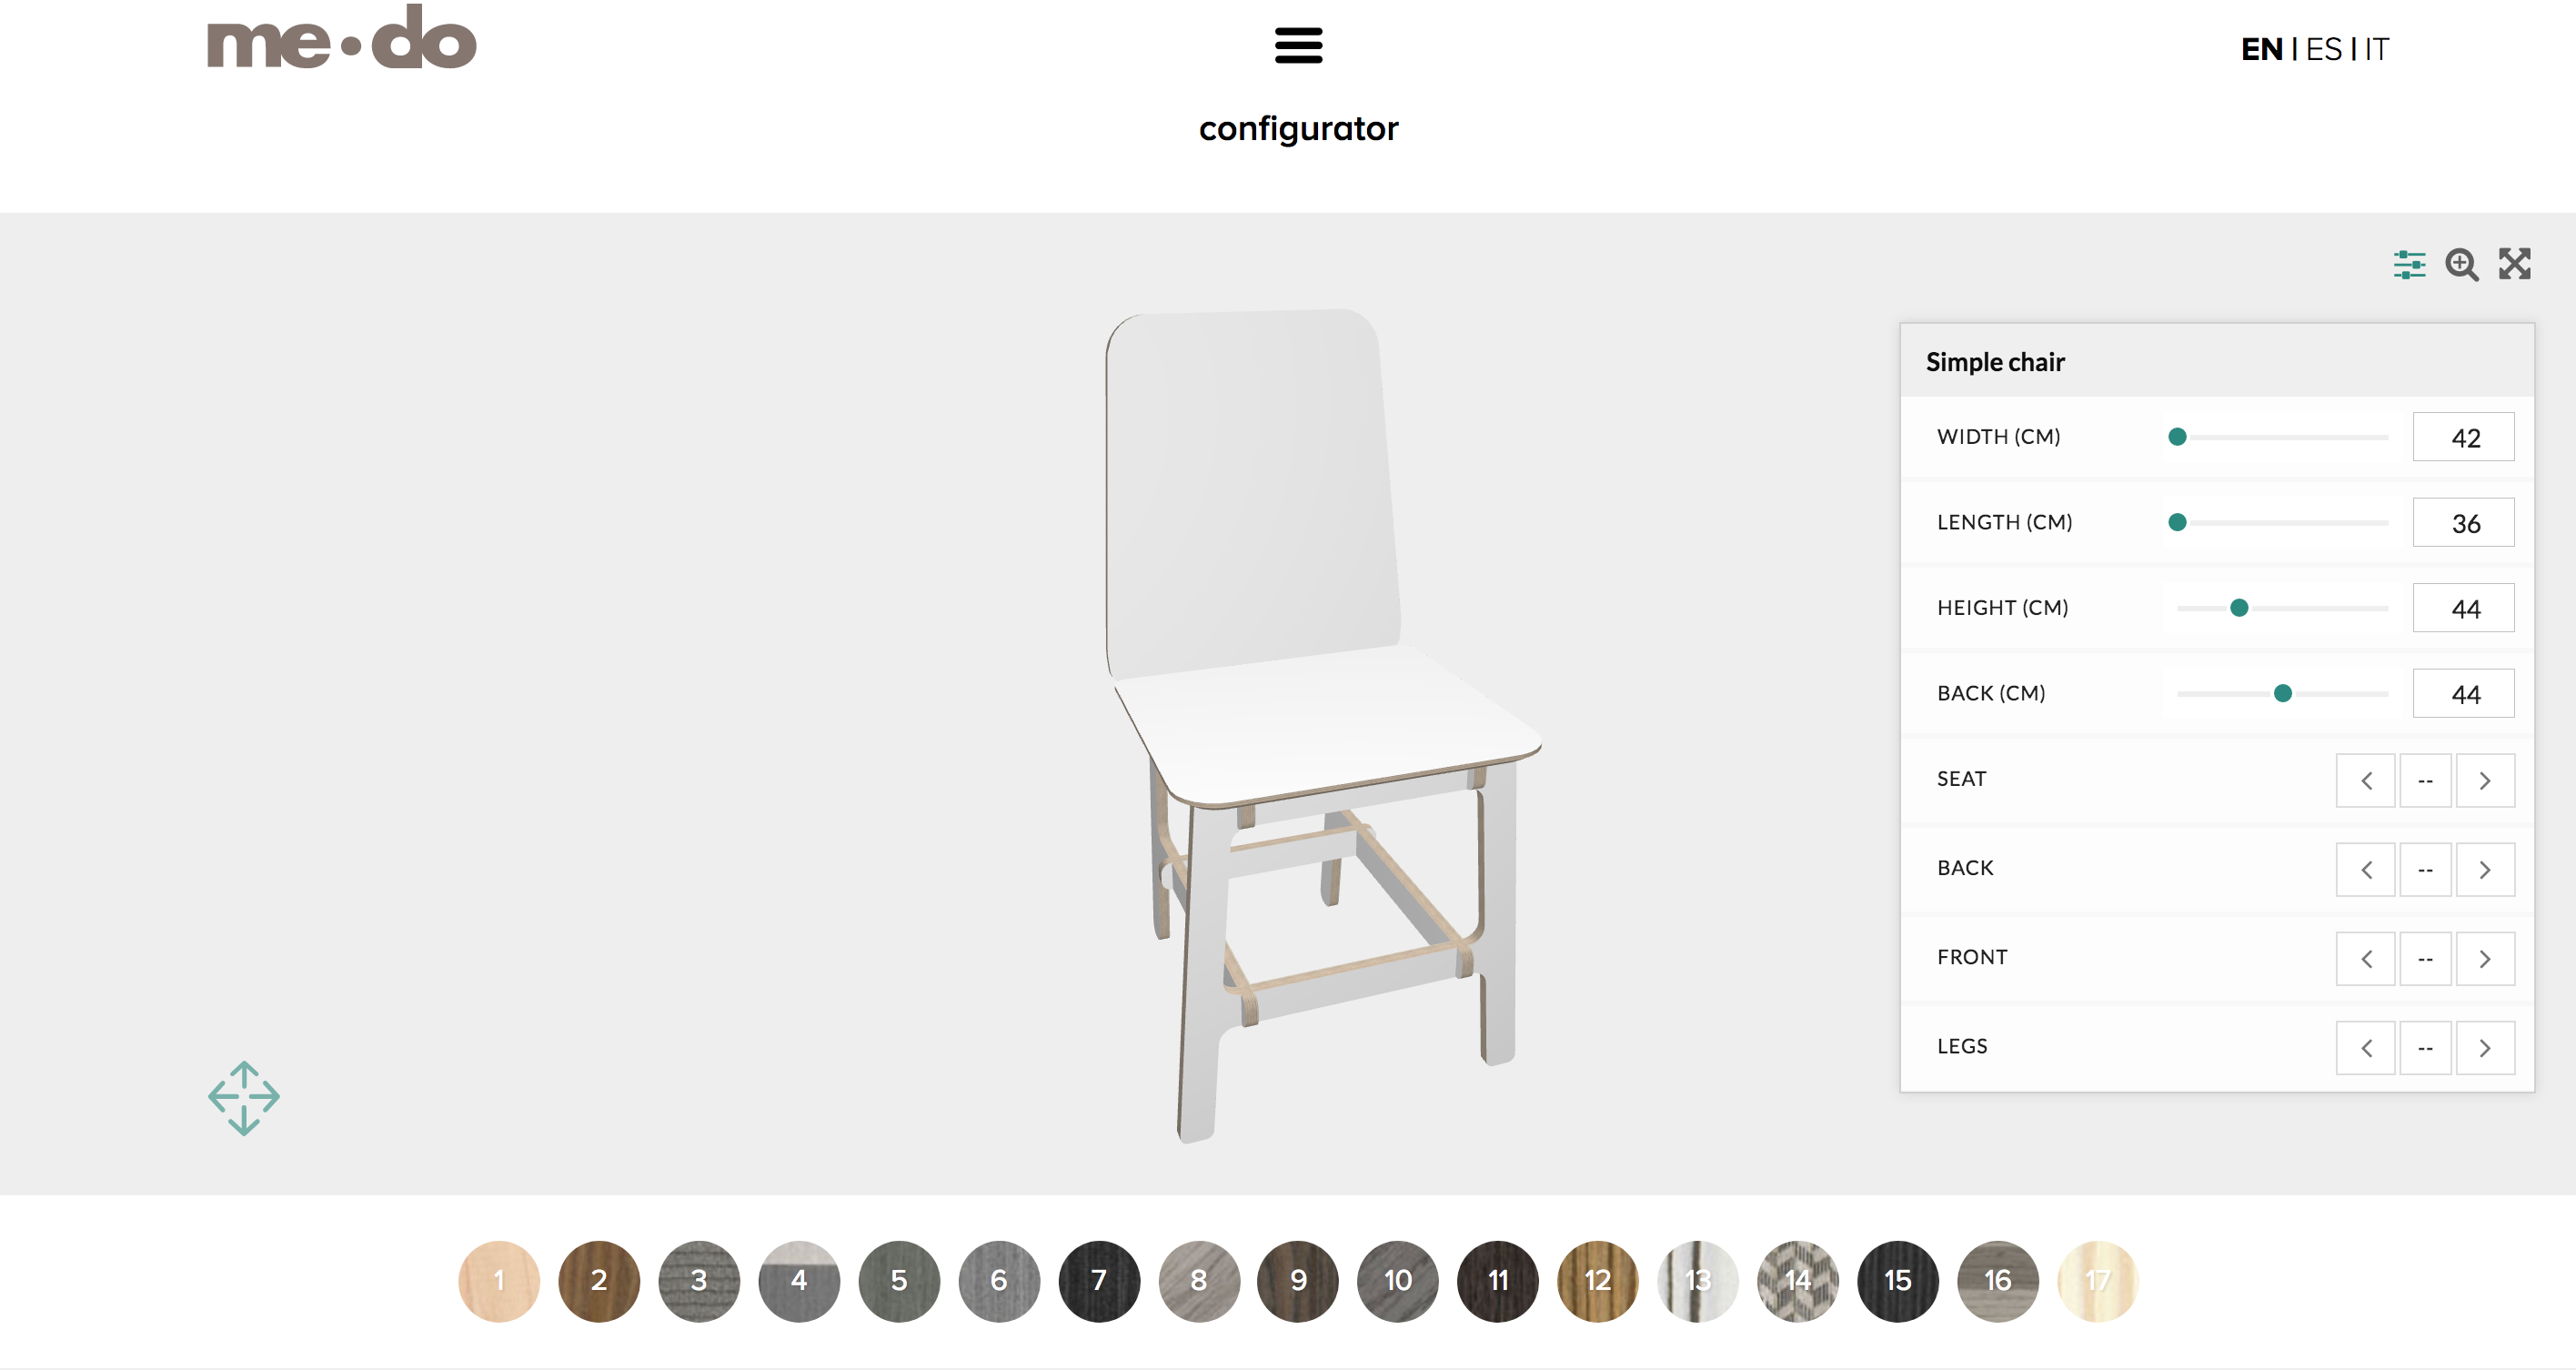 Are there any furniture configurator tools online? - Quora